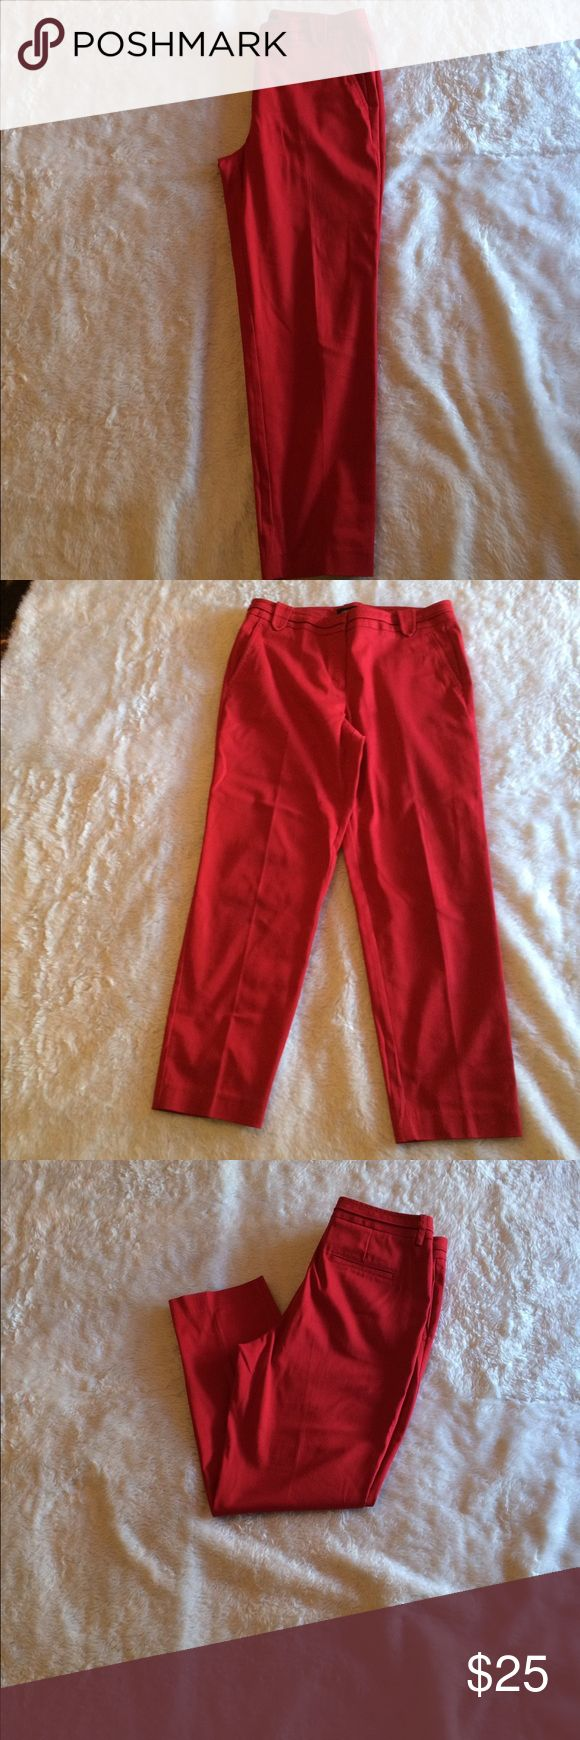 """Larry Levine red ankle pant 28"""" inseam 🎉 Larry Levine 🎉 Size 8 🎉 Gently worn 🎉 28"""" inseam 🎉 Please ask for additional pictures, measurements, or ask questions before purchase. 🎉 No trades or other apps 🎉 Ships next business day, unless noted in my closet  🎉 Bundle for discount Larry Levine Pants Ankle & Cropped"""